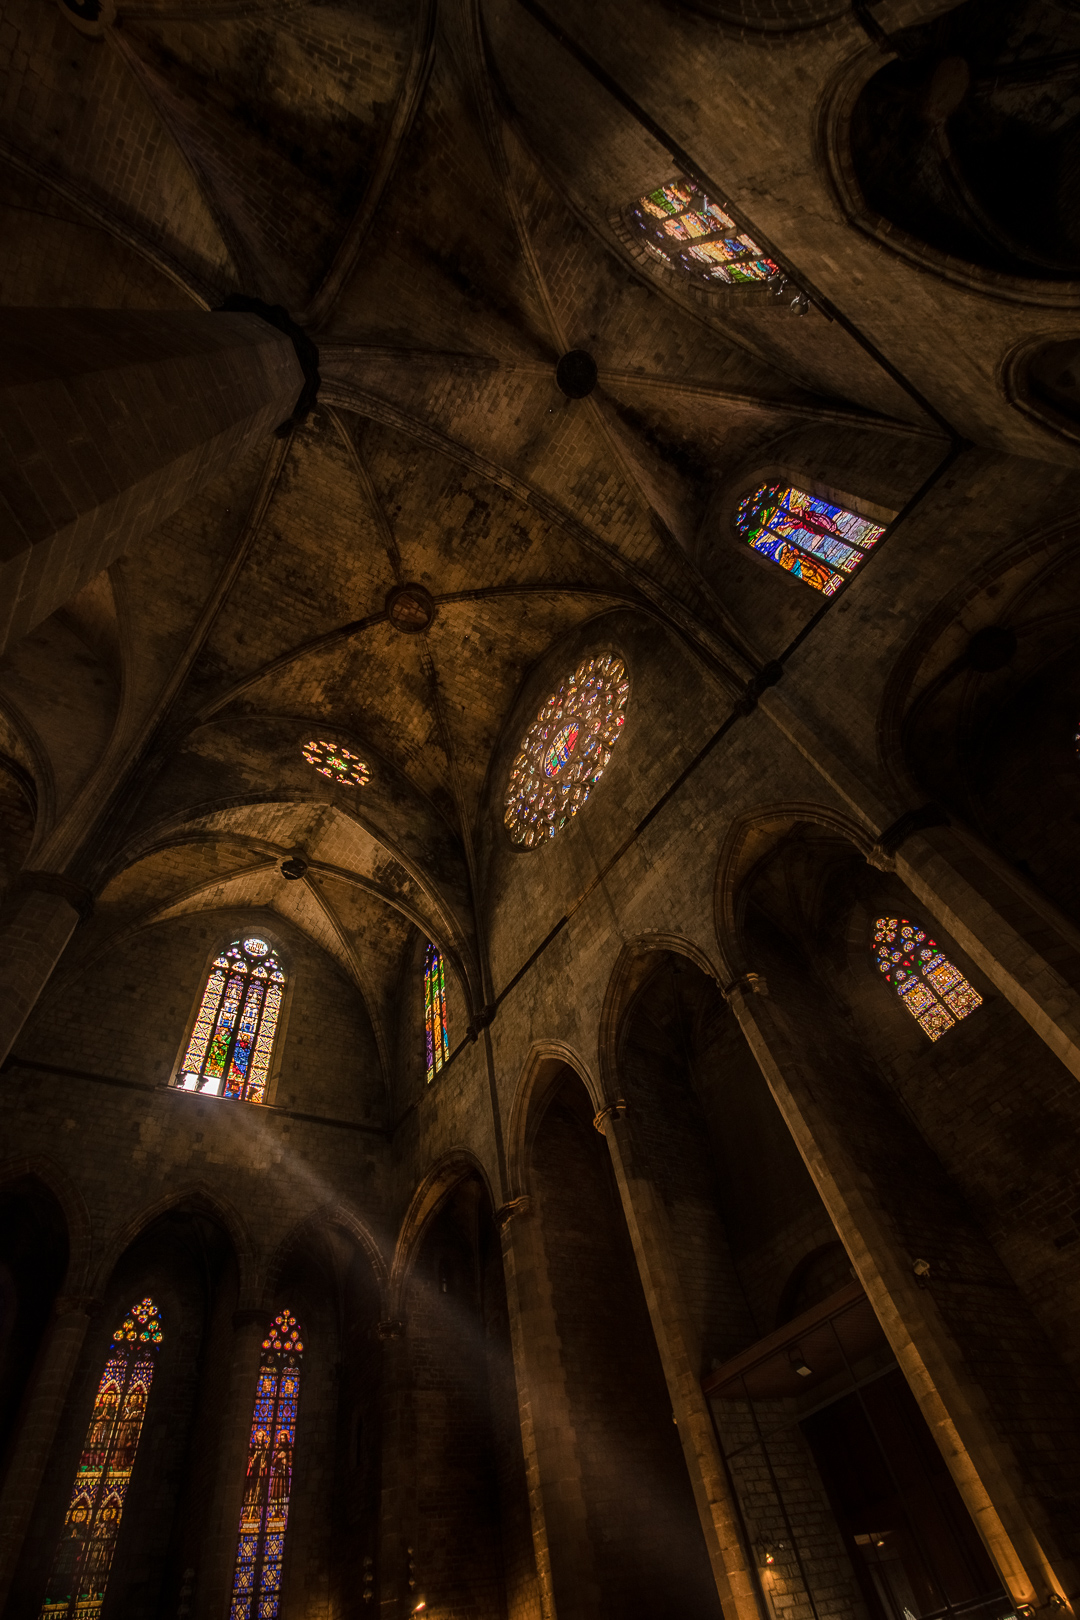 "After inhaling the great story from Ildefonso Falcones ""Cathedral of the Sea"" I could not resist and I needed to visit the original church in Barcelona. The story and the architecture inspired me to this photo which was selected one year later for the second part of the book as cover! Is it an honor for me and I can't still believe it..."